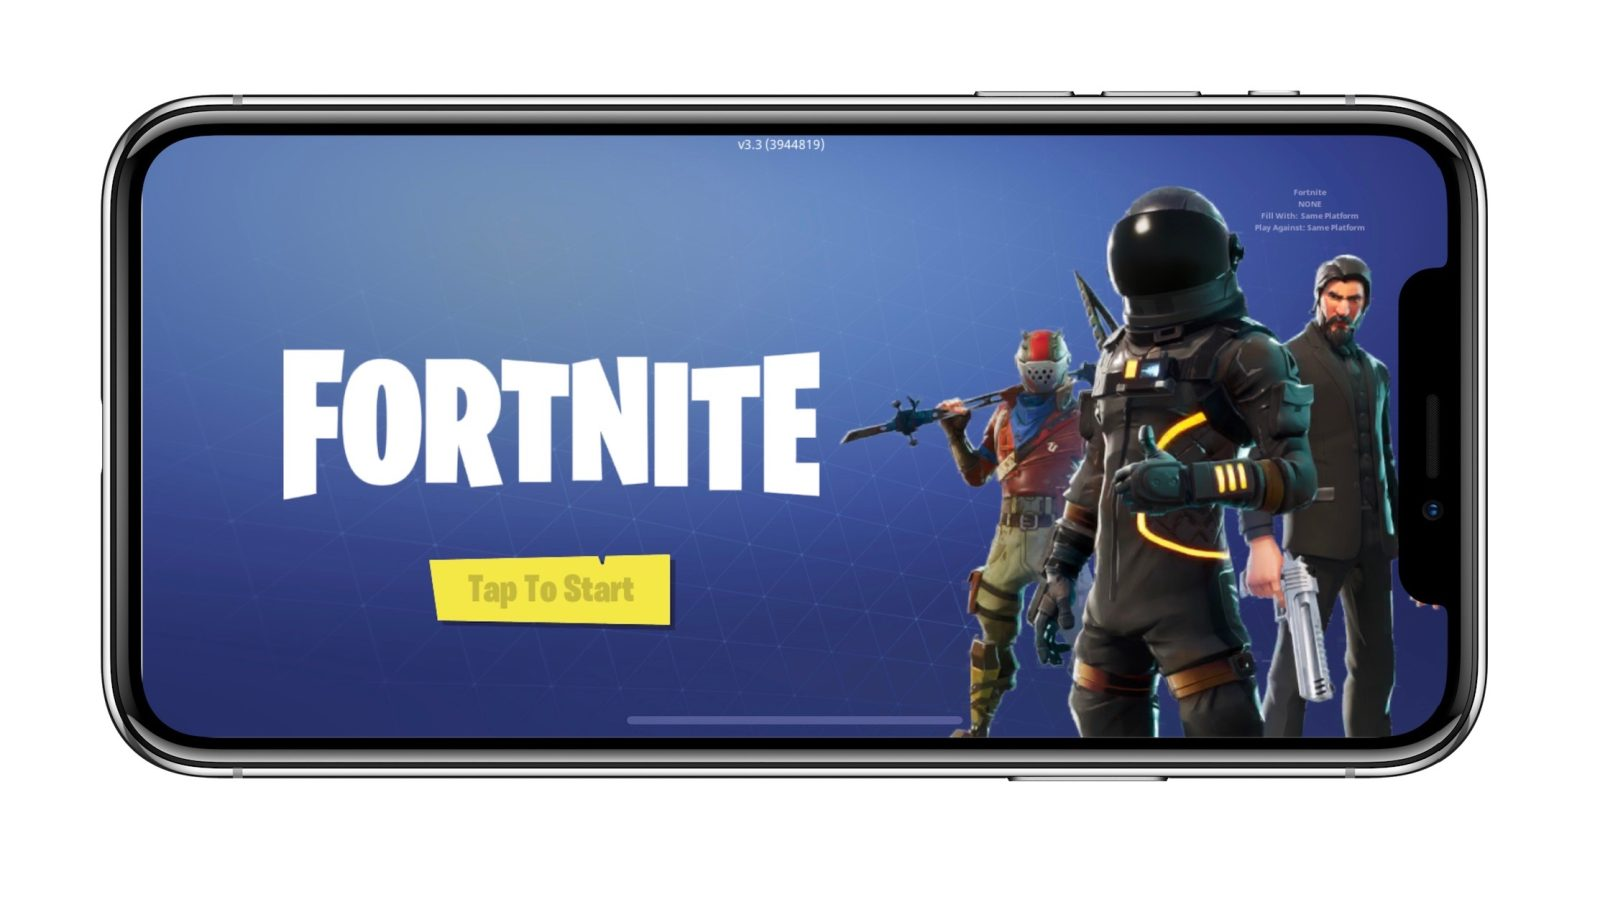 fortnite for ios is now live in the app store here s how to get an invite - how to get fortnite on macbook pro